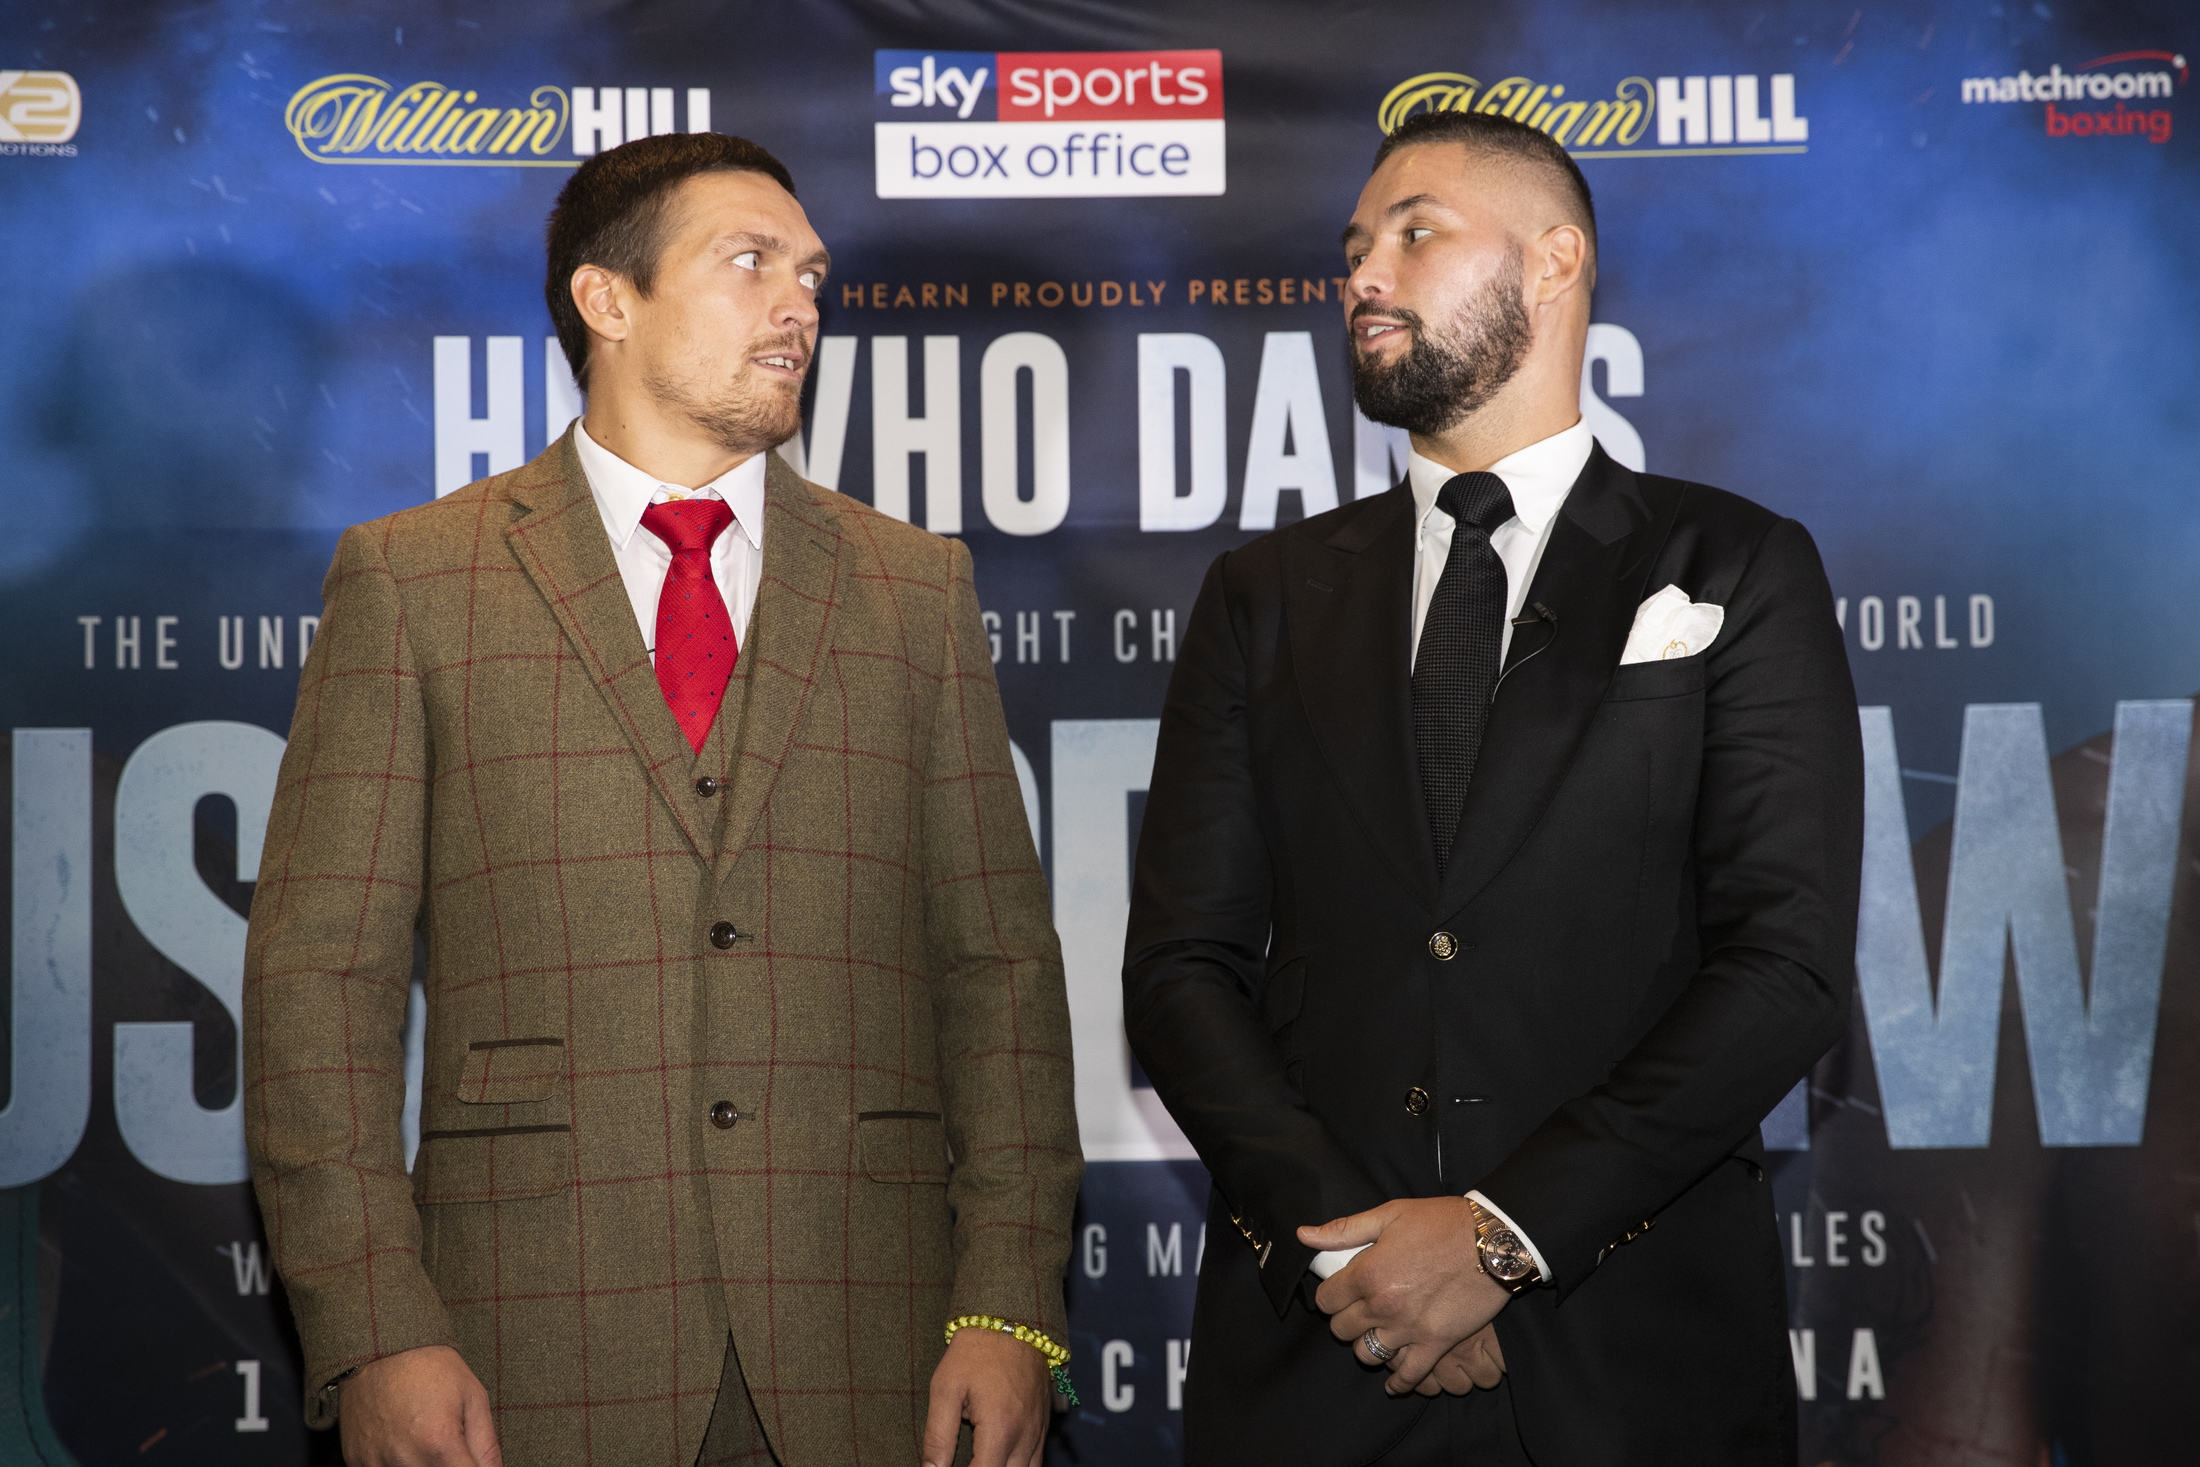 Undisputed cruiserweight champion Aleksandr Usyk (left) and Tony Bellew. Photo by Mark Robinson